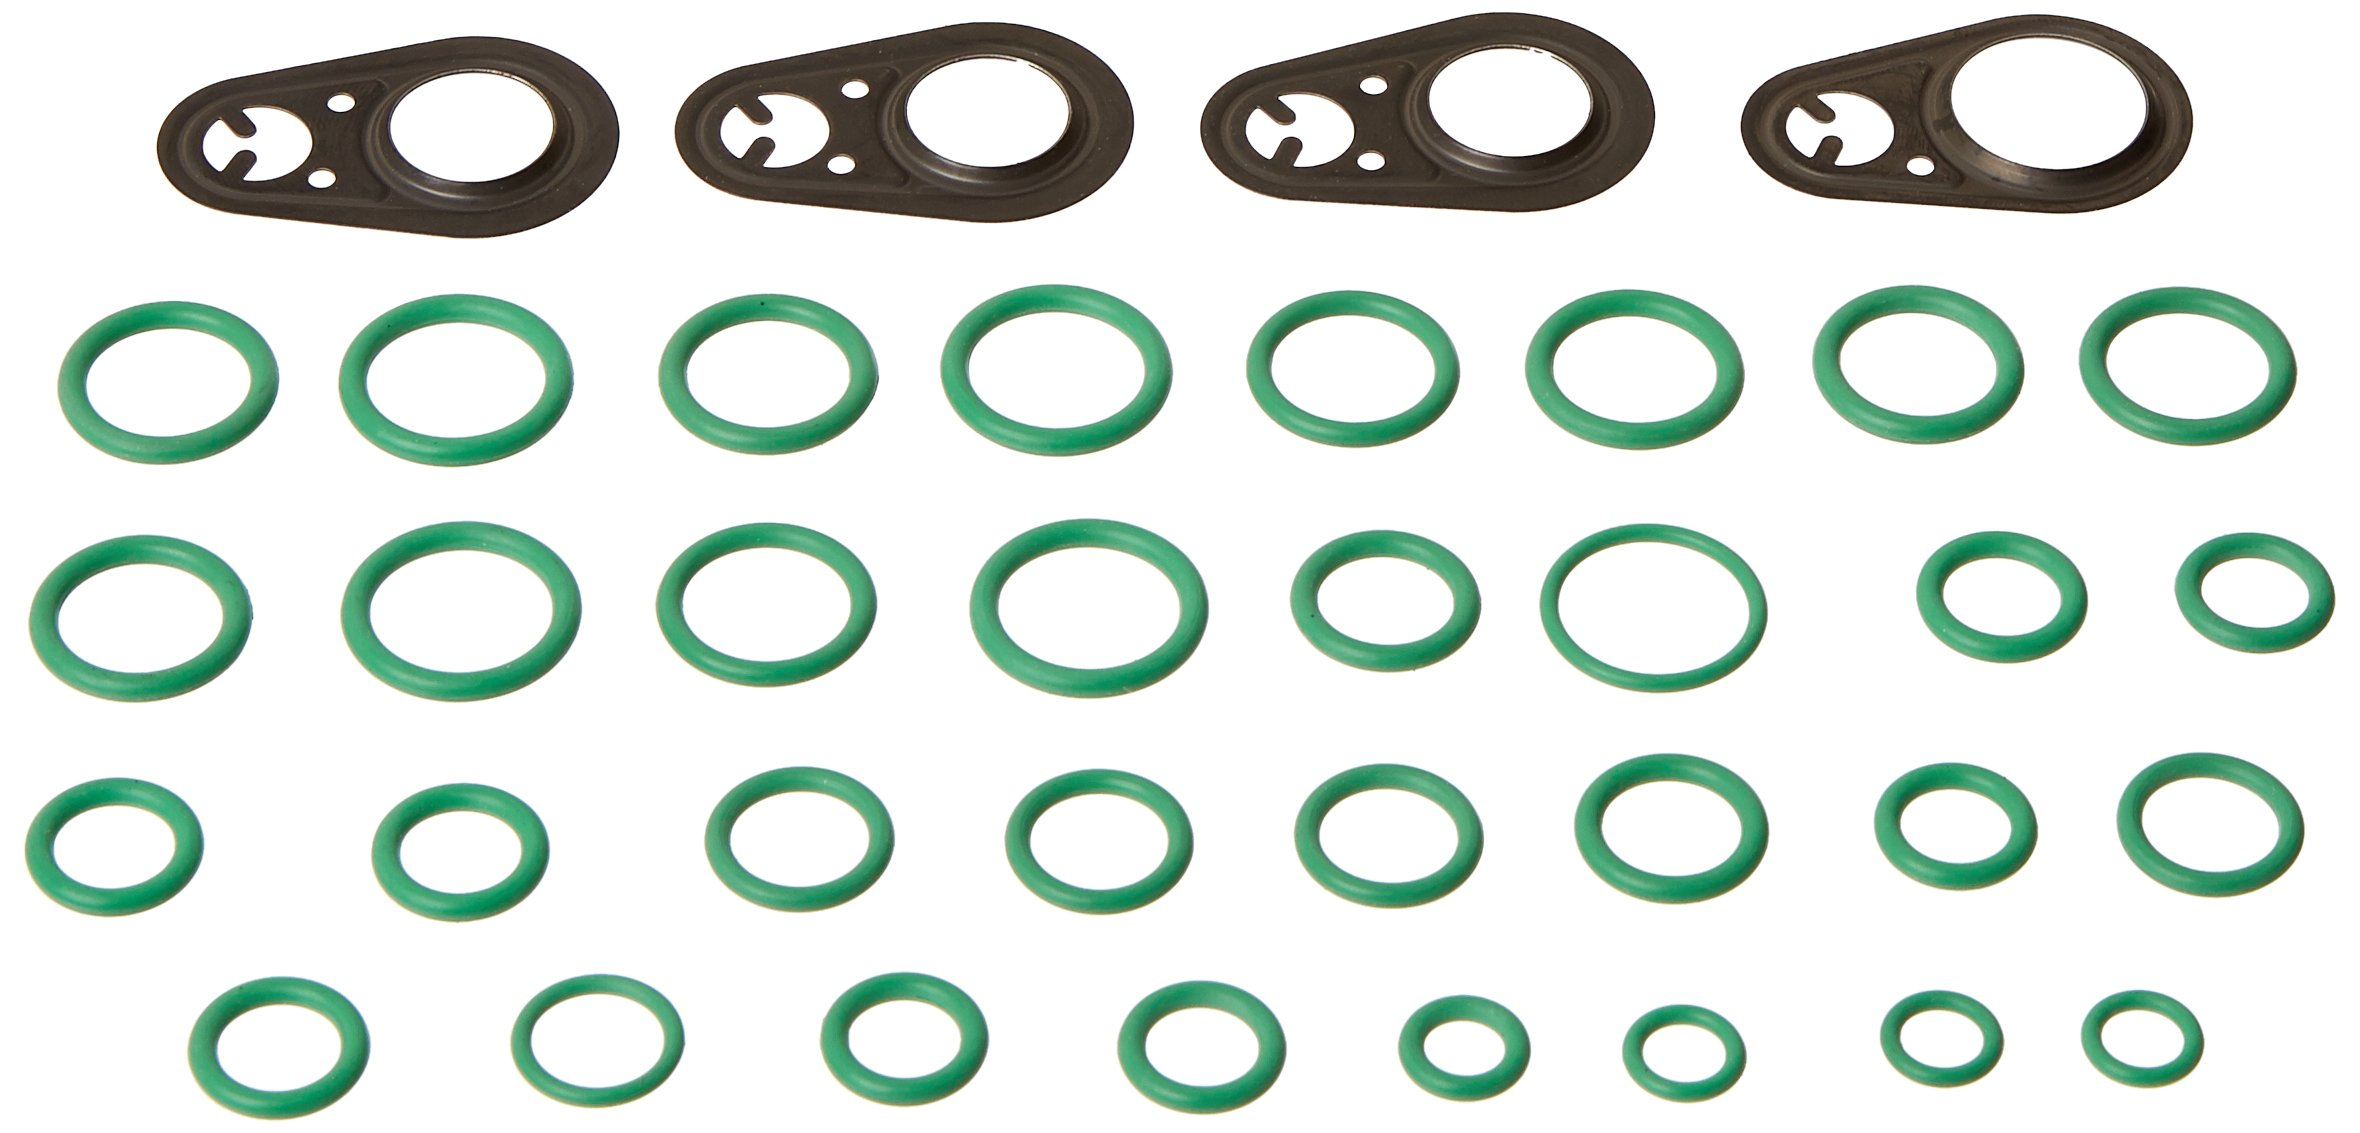 Four Seasons 26706 O-Ring & Gasket Air Conditioning System Seal Kit